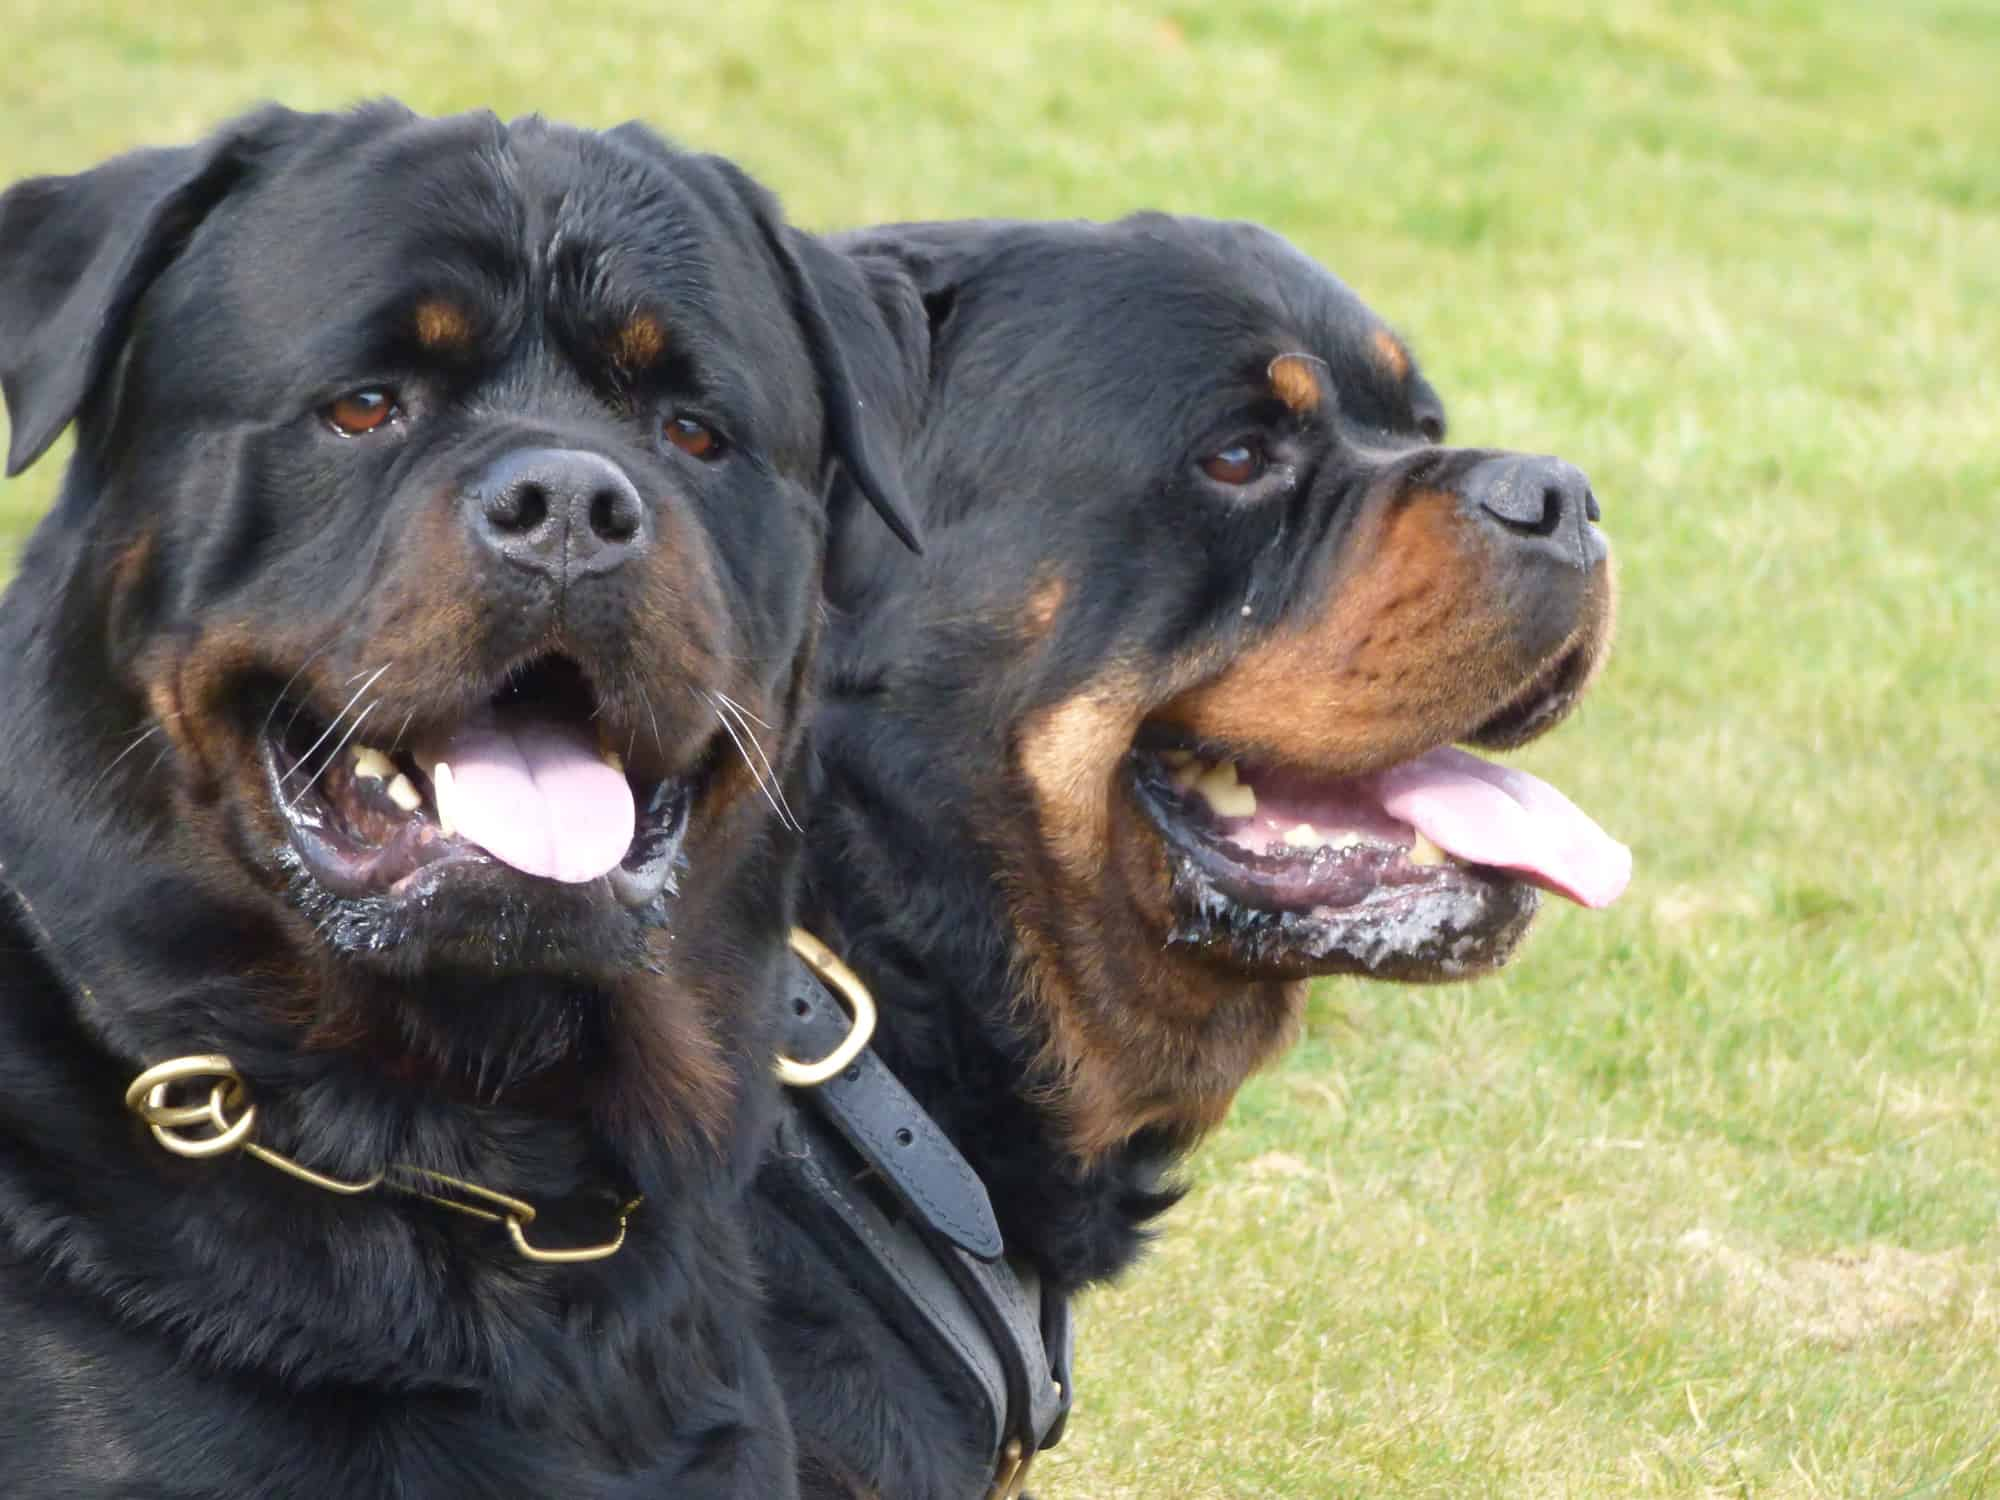 k9 security dogs by Pride GB